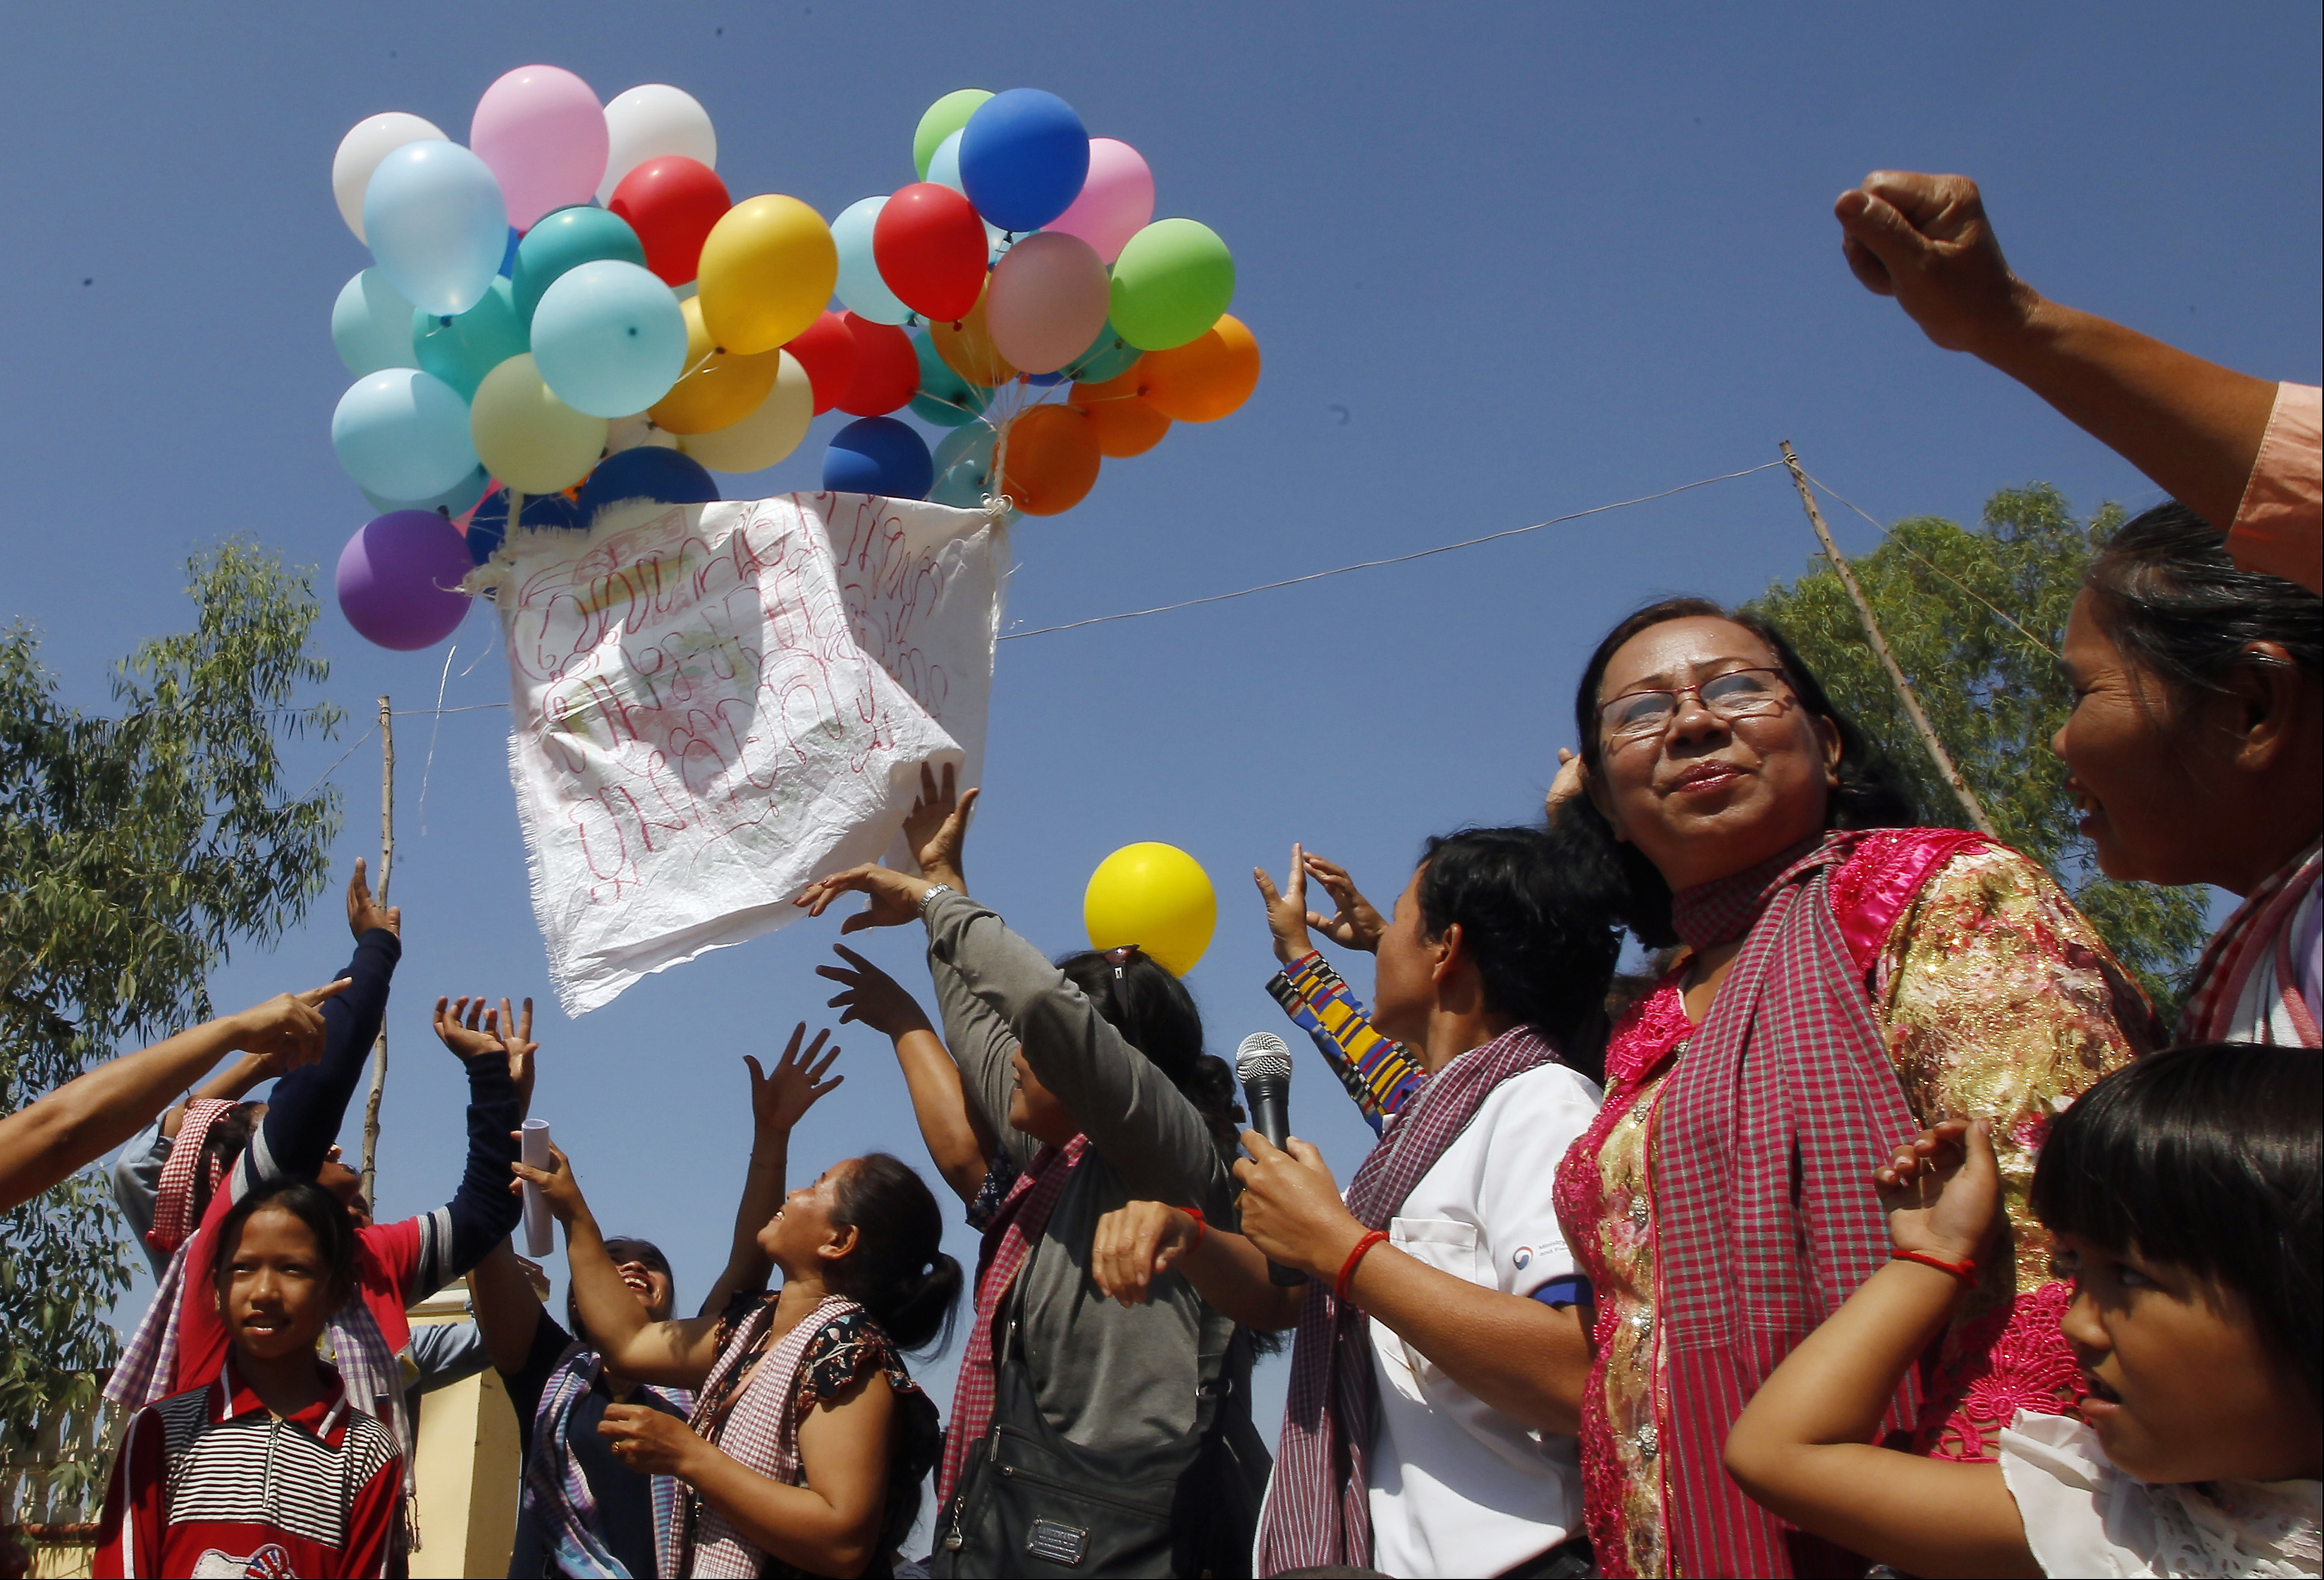 Land activists from Boeung Chhuk community release balloons to mark International Women's Day on the outskirts of Phnom Penh, Cambodia, Thursday, March 8, 2018. The community people took part in the International Women's Day celebration, coincided with the 10th anniversary of their forced eviction. (AP Photo/Heng Sinith)